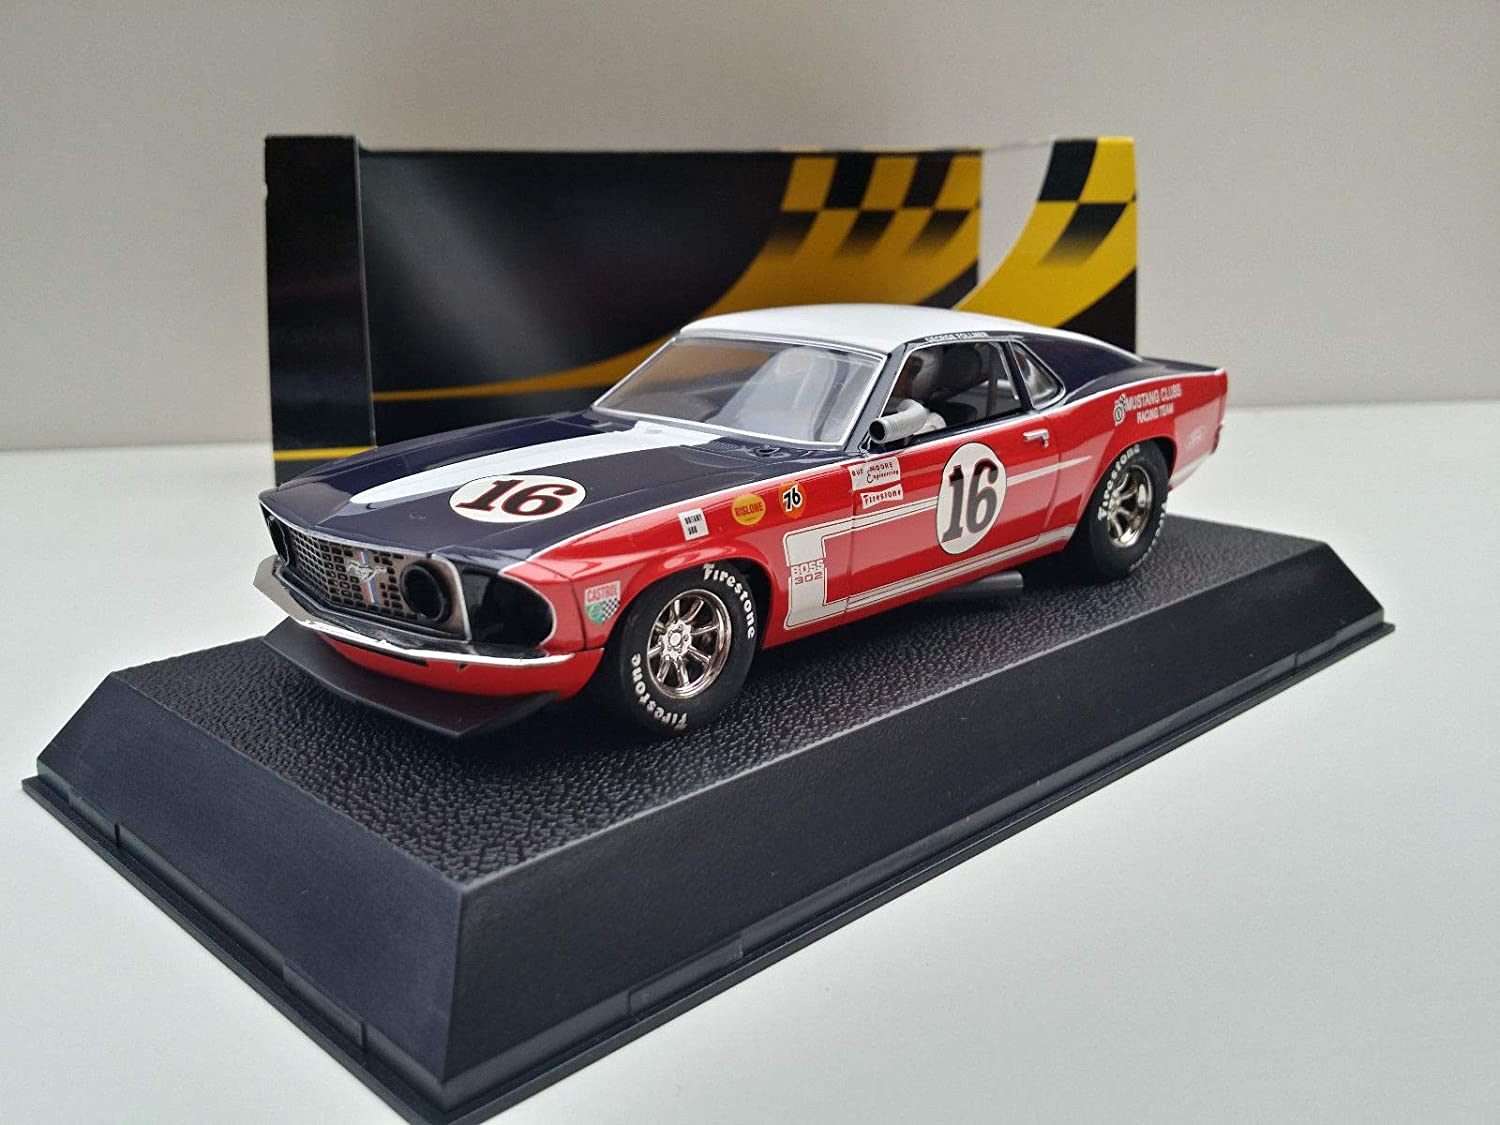 Slot scx scalextric superslot h2402 ford mustang 1969 nº16 amazon es juguetes y juegos